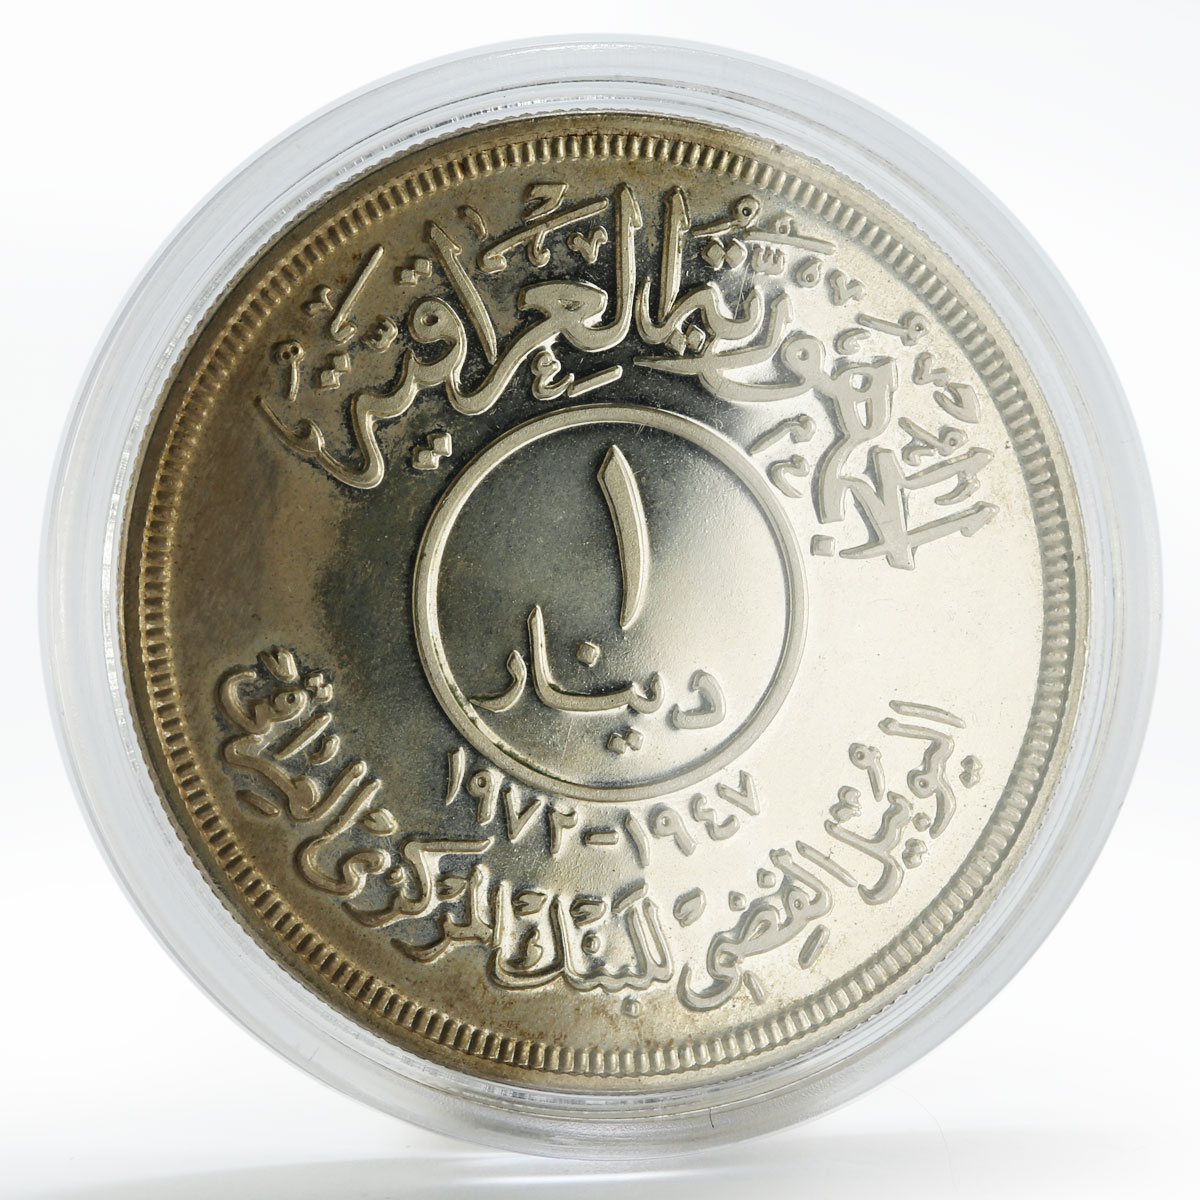 Iraq 1 dinar 25th Anniversary of Central Bank proof silver coin 1972